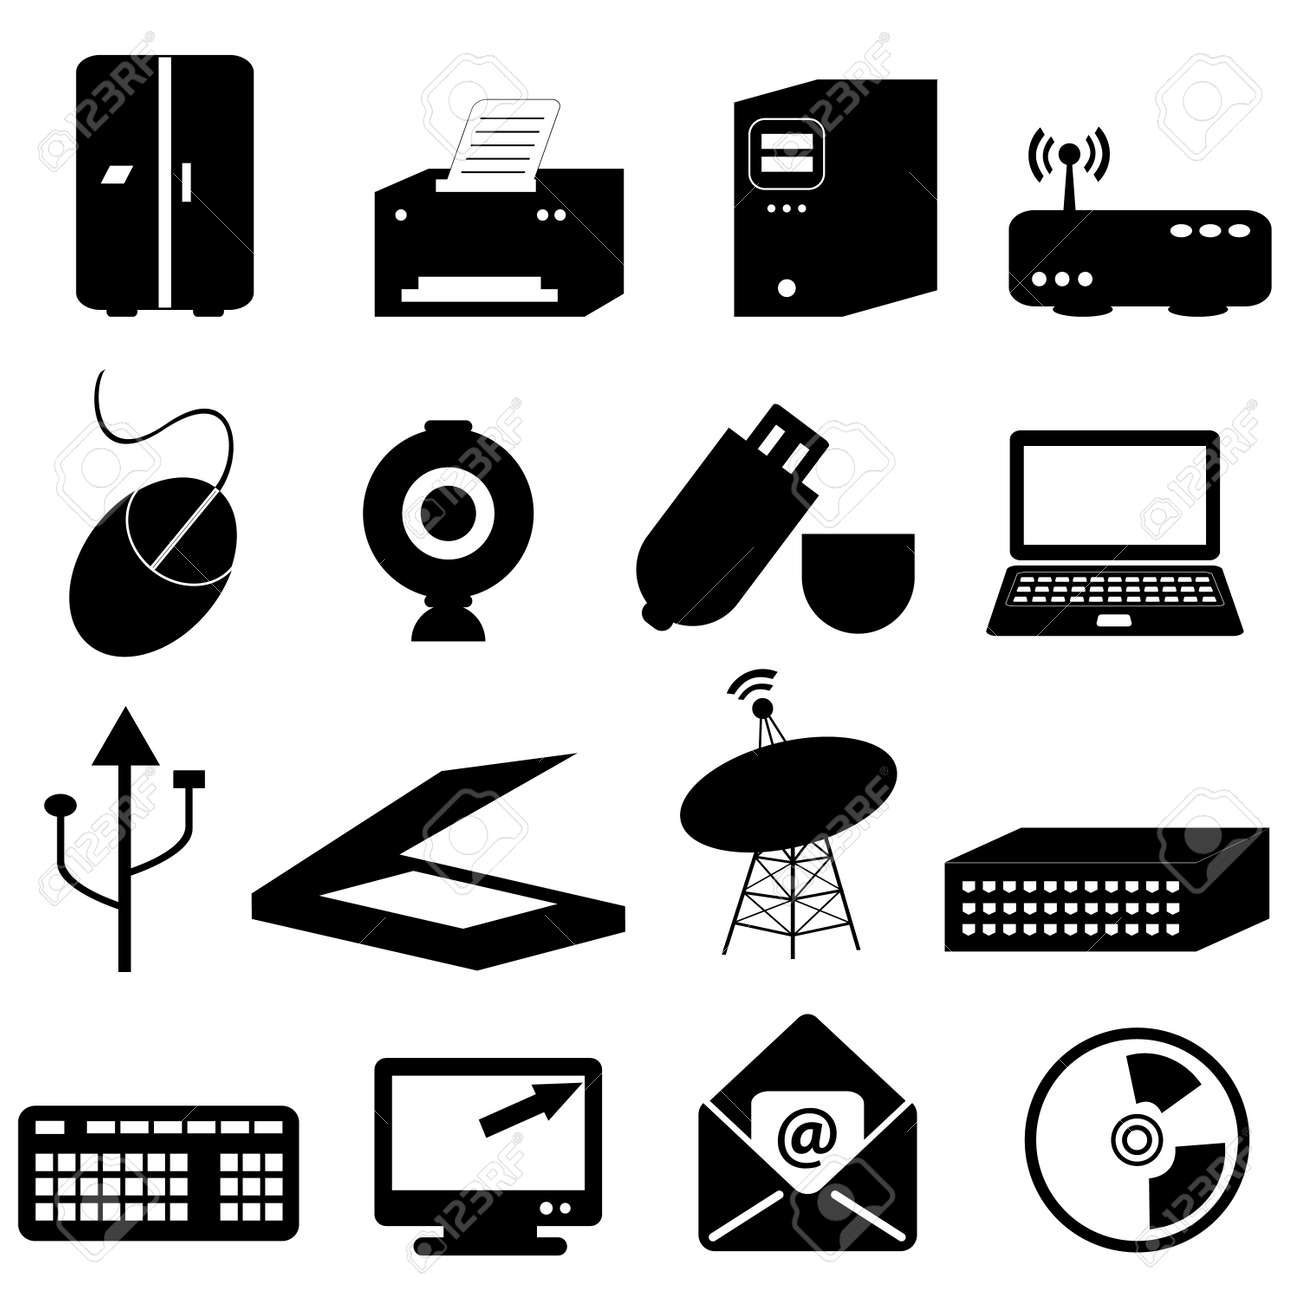 Computer and technology related icons and symbols royalty free computer and technology related icons and symbols stock vector 8776982 biocorpaavc